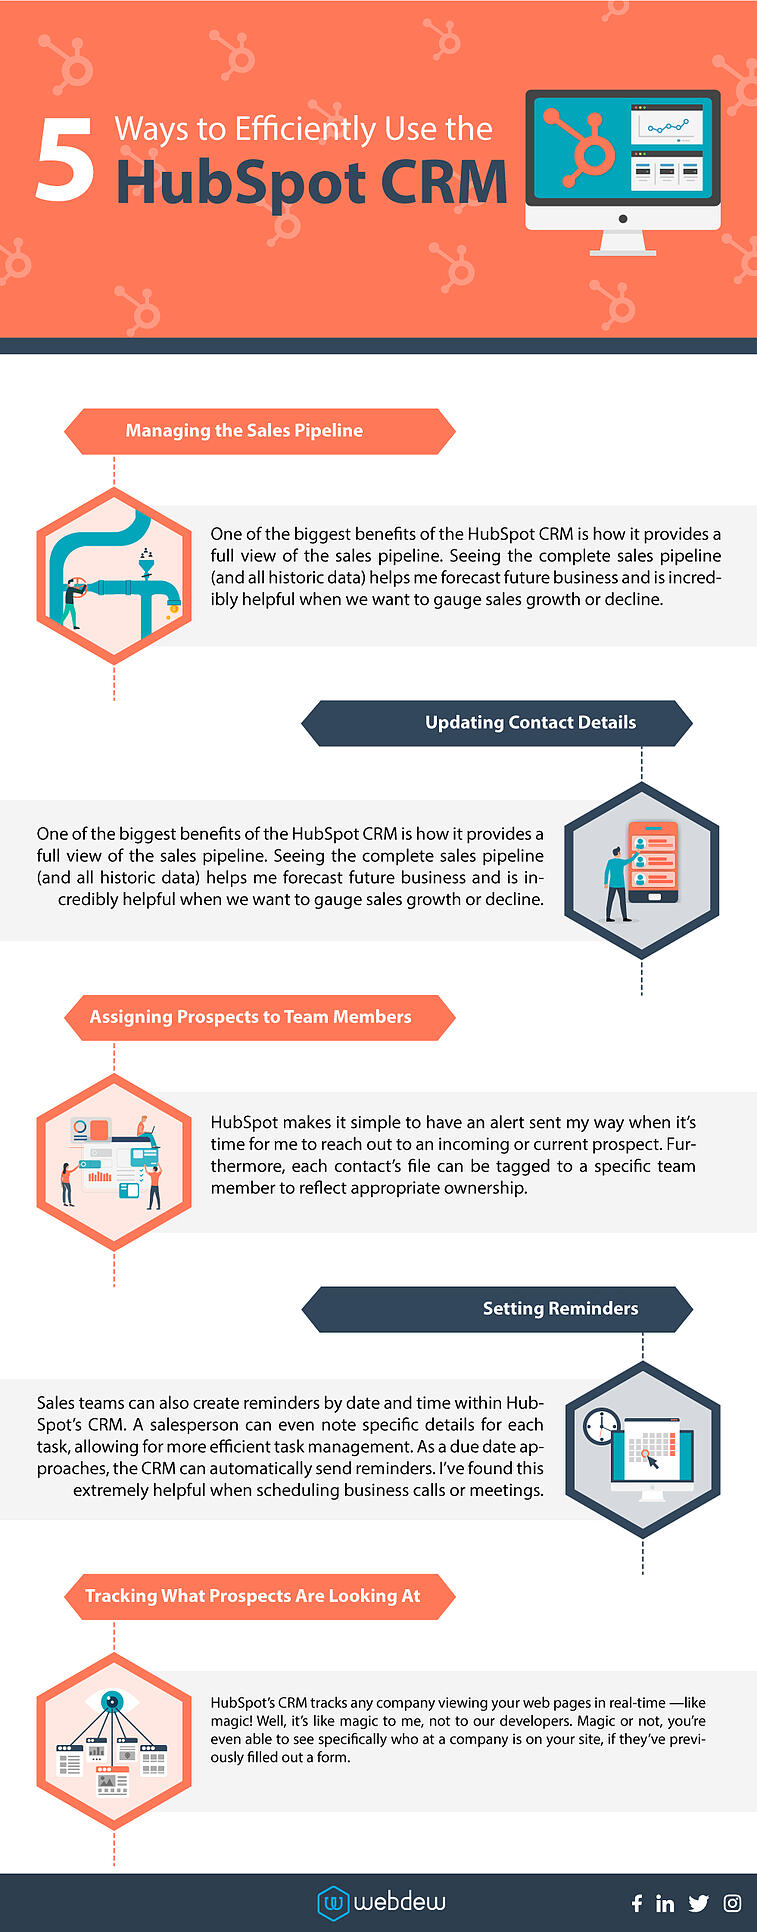 5-Ways-to-Use-the-HubSpot-CRM